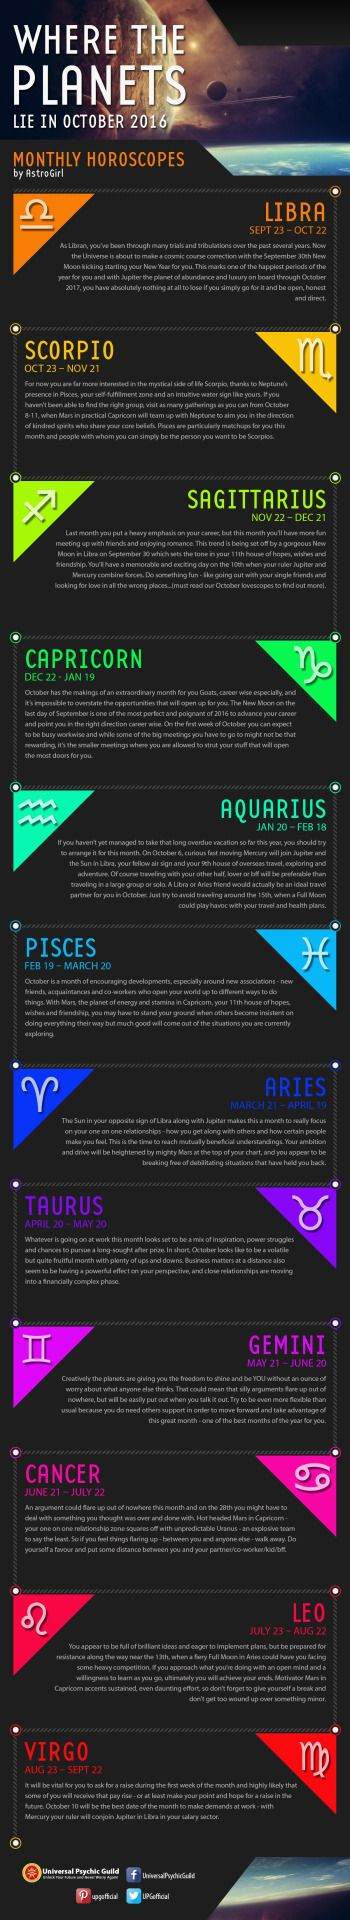 "#Infographic: Where the #planets lie in #October 2016"" Check out our infographic, which reveals each #starsign's challenges and advantages for the month of October 2016 "" • Sun in Libra through October 23 • Full Moon in Aries – October 15 • New Moon in..."